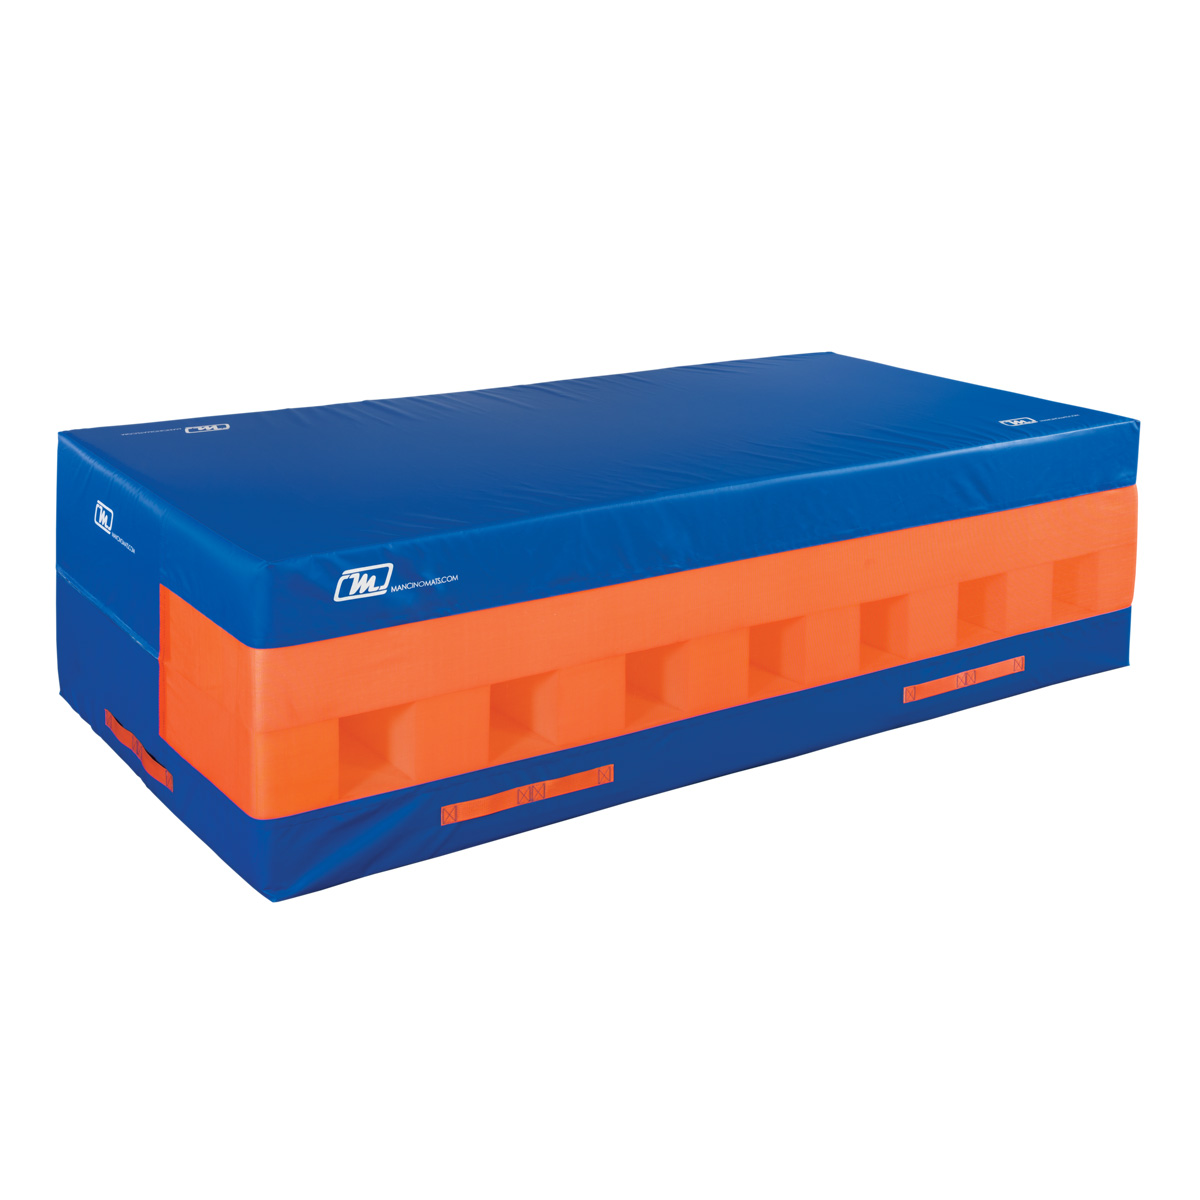 blue and orange safety resi pit for landings and falls - resi pit - mancino mats